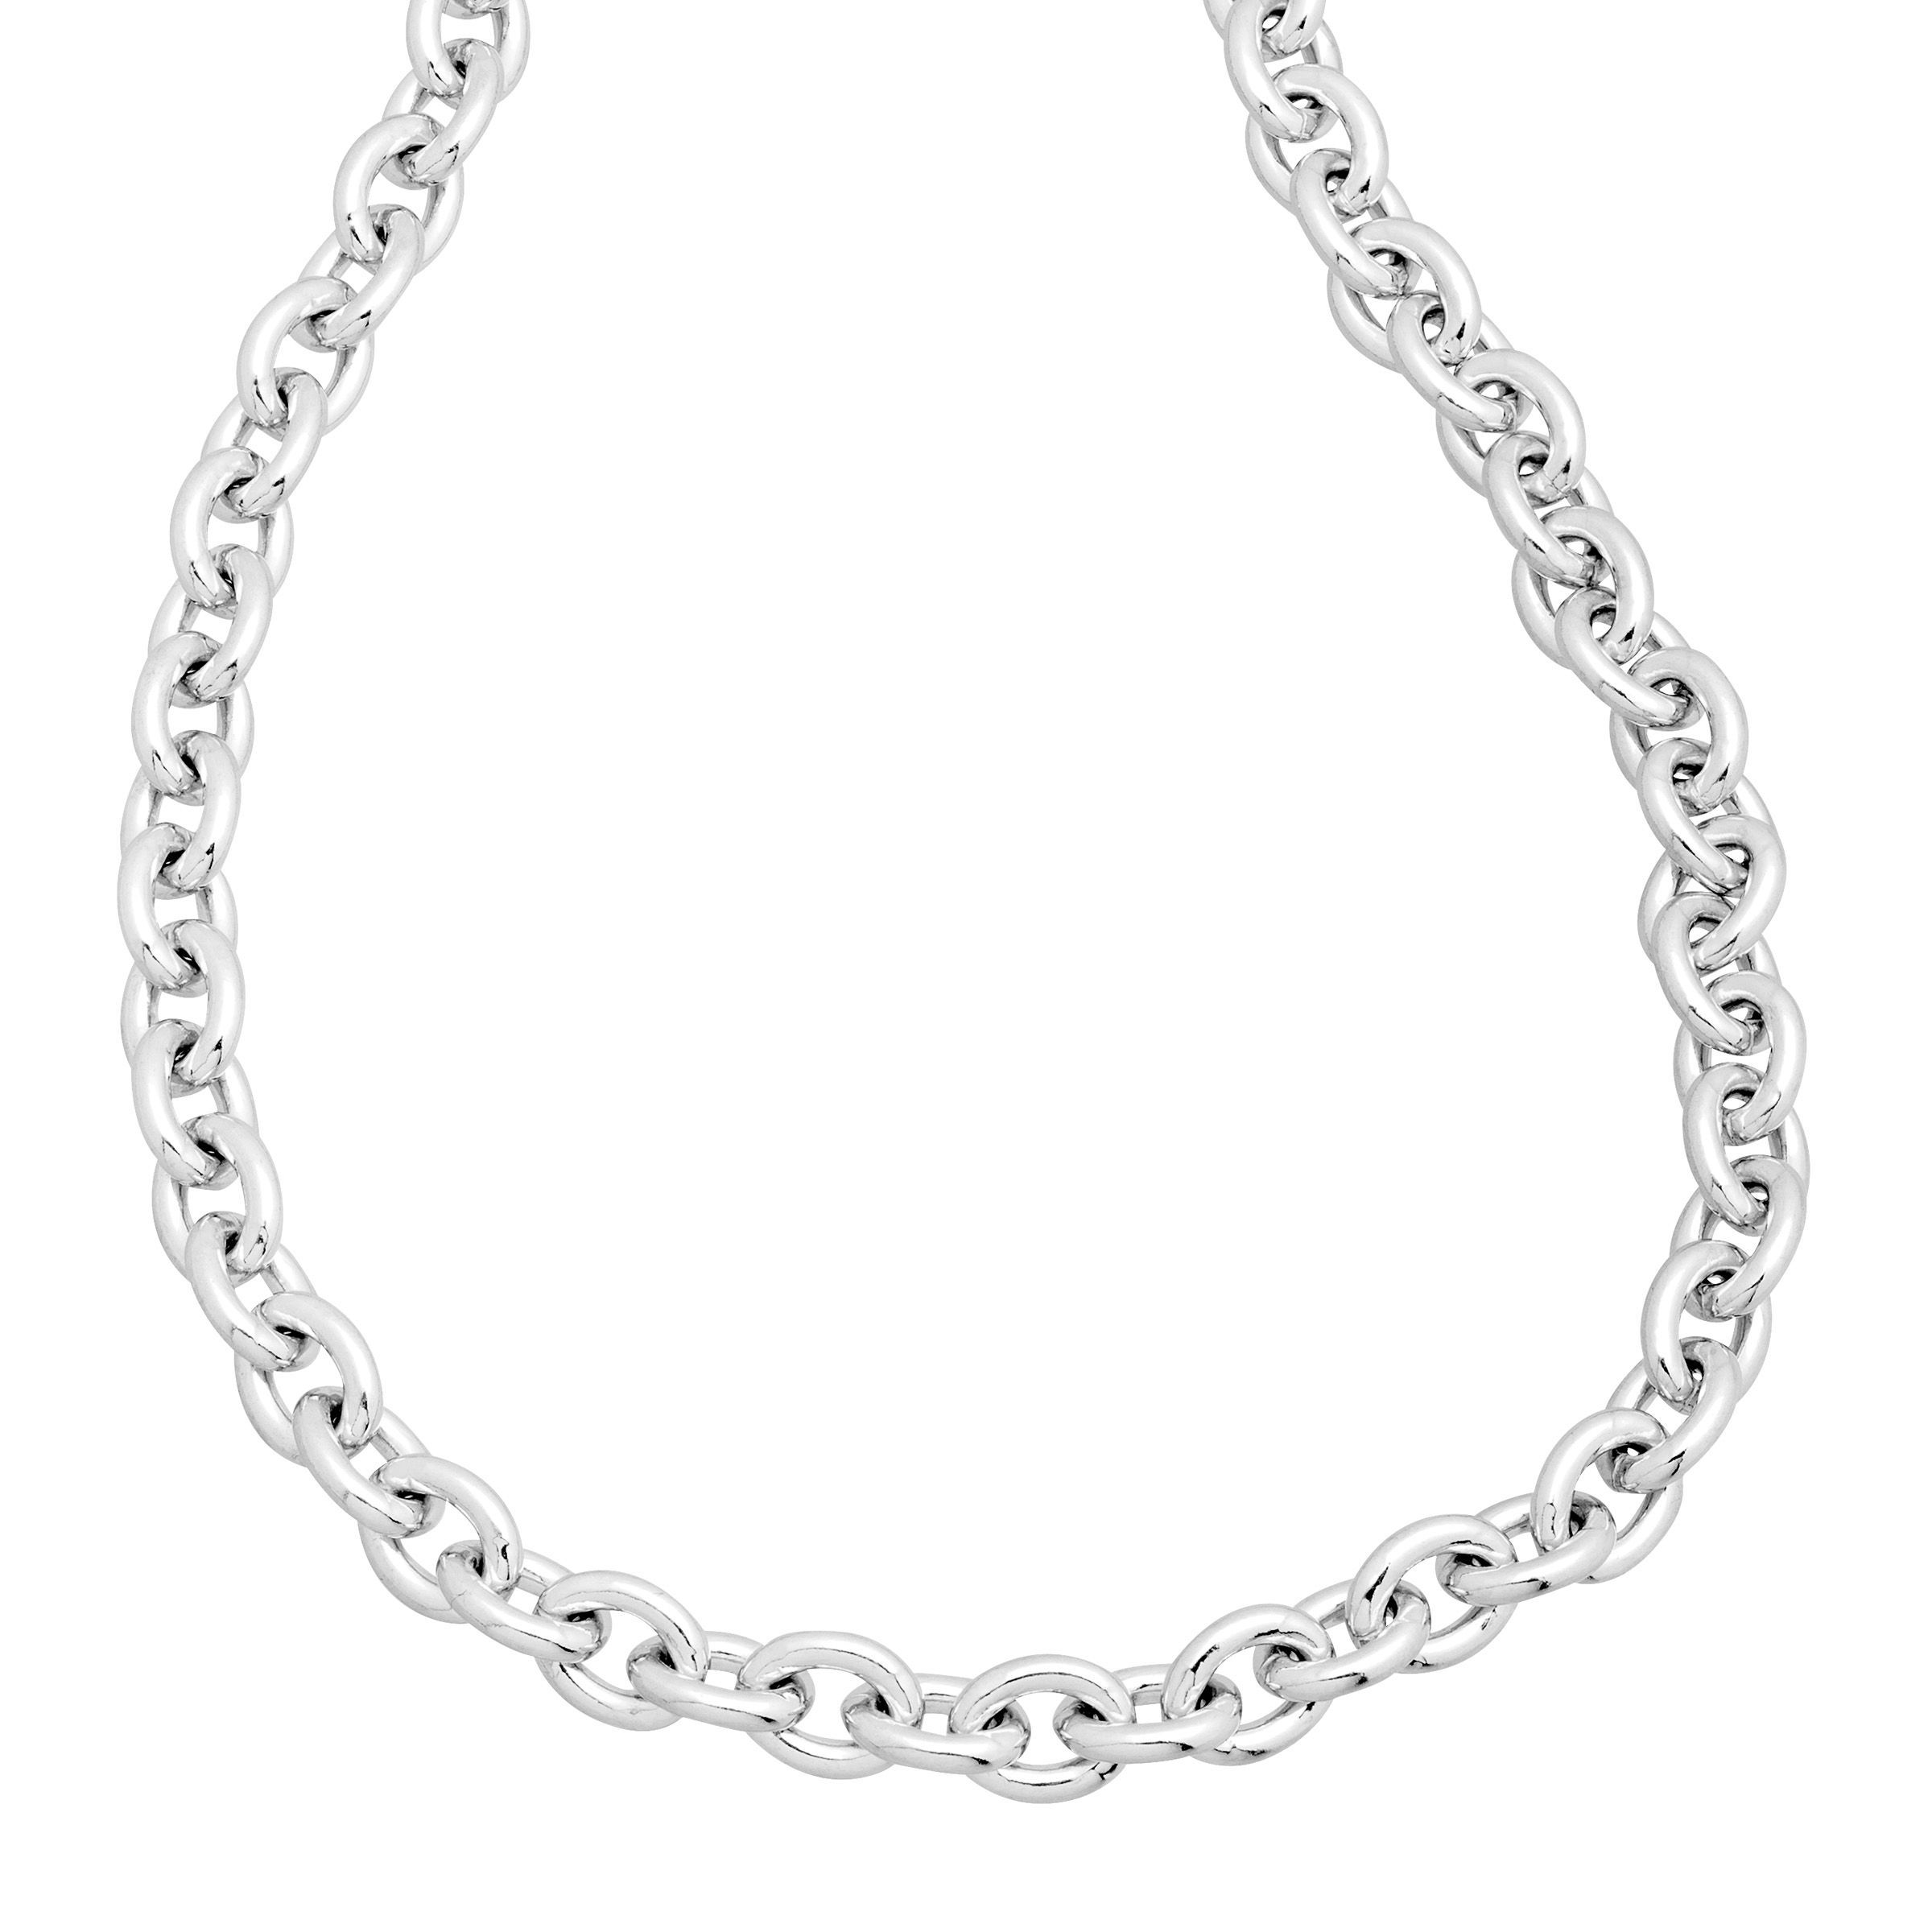 chain necklace pendant plated silver itm jewelry design girls new chains circle or gold womens